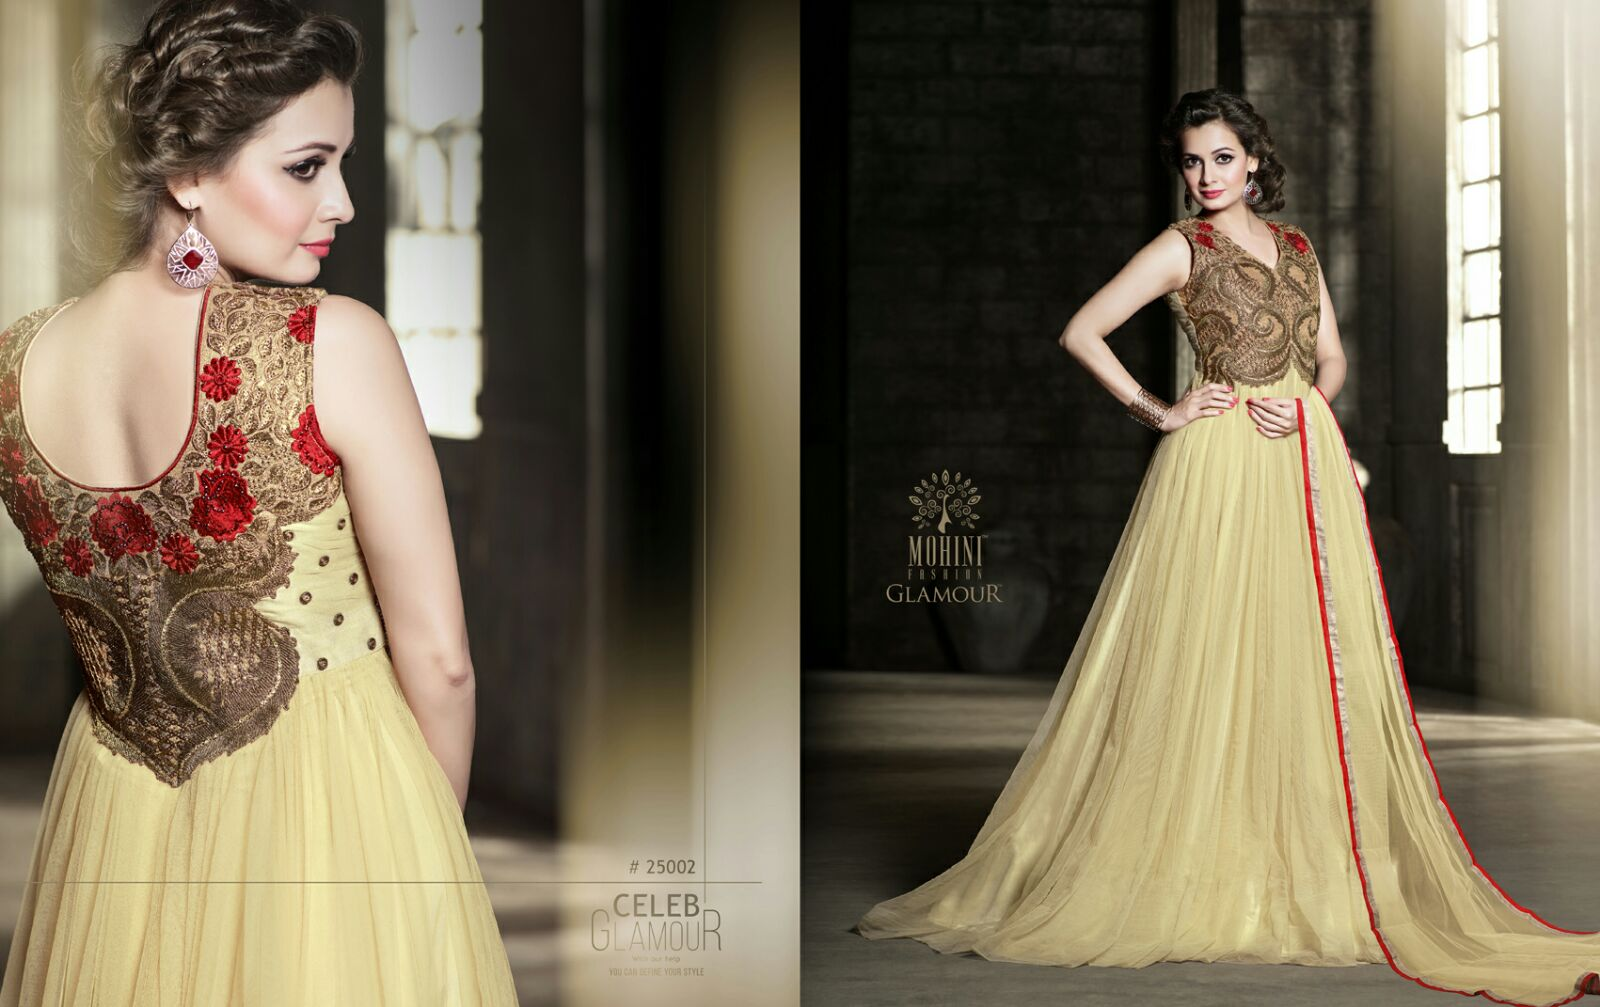 Mohini Glamour - Designer And Stylish Fancy Gown - Helix Enterprise ...